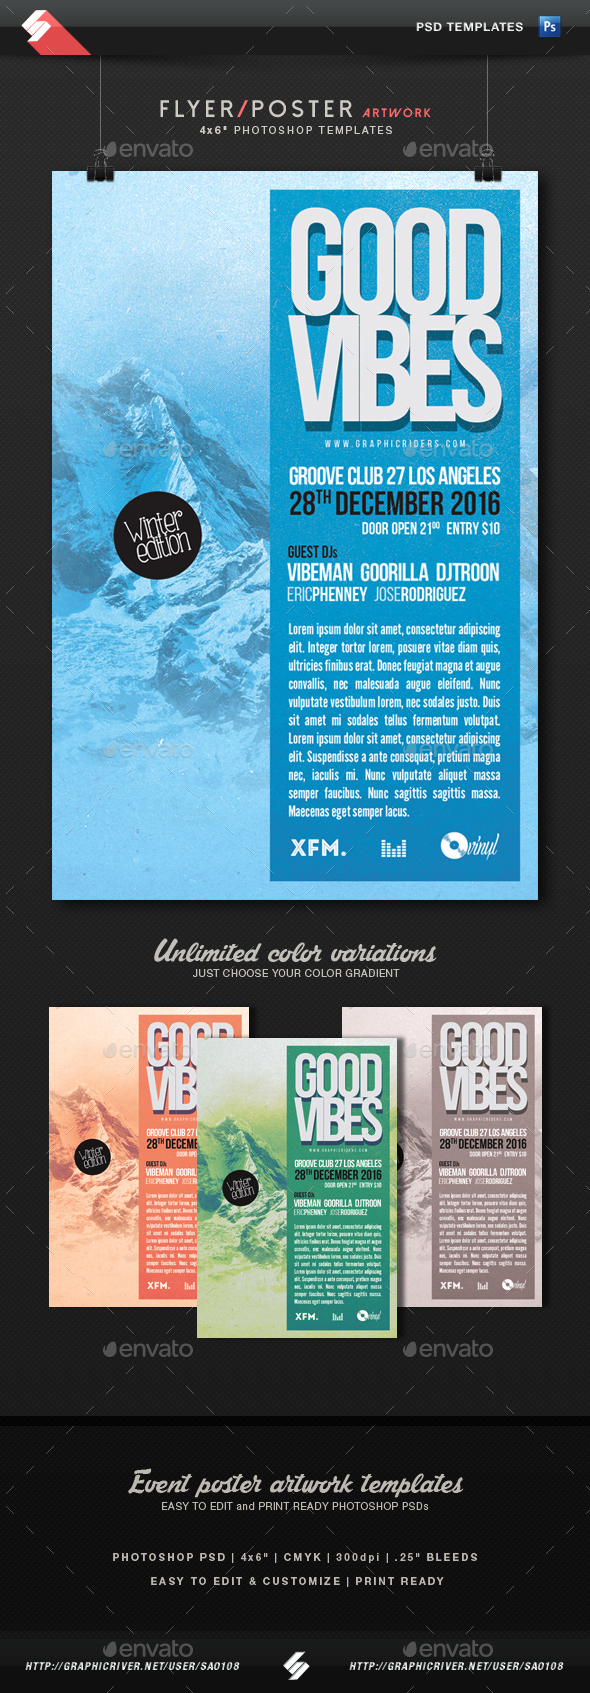 Good Vibes 2 - Winter Edition Flyer Template - Clubs & Parties Events